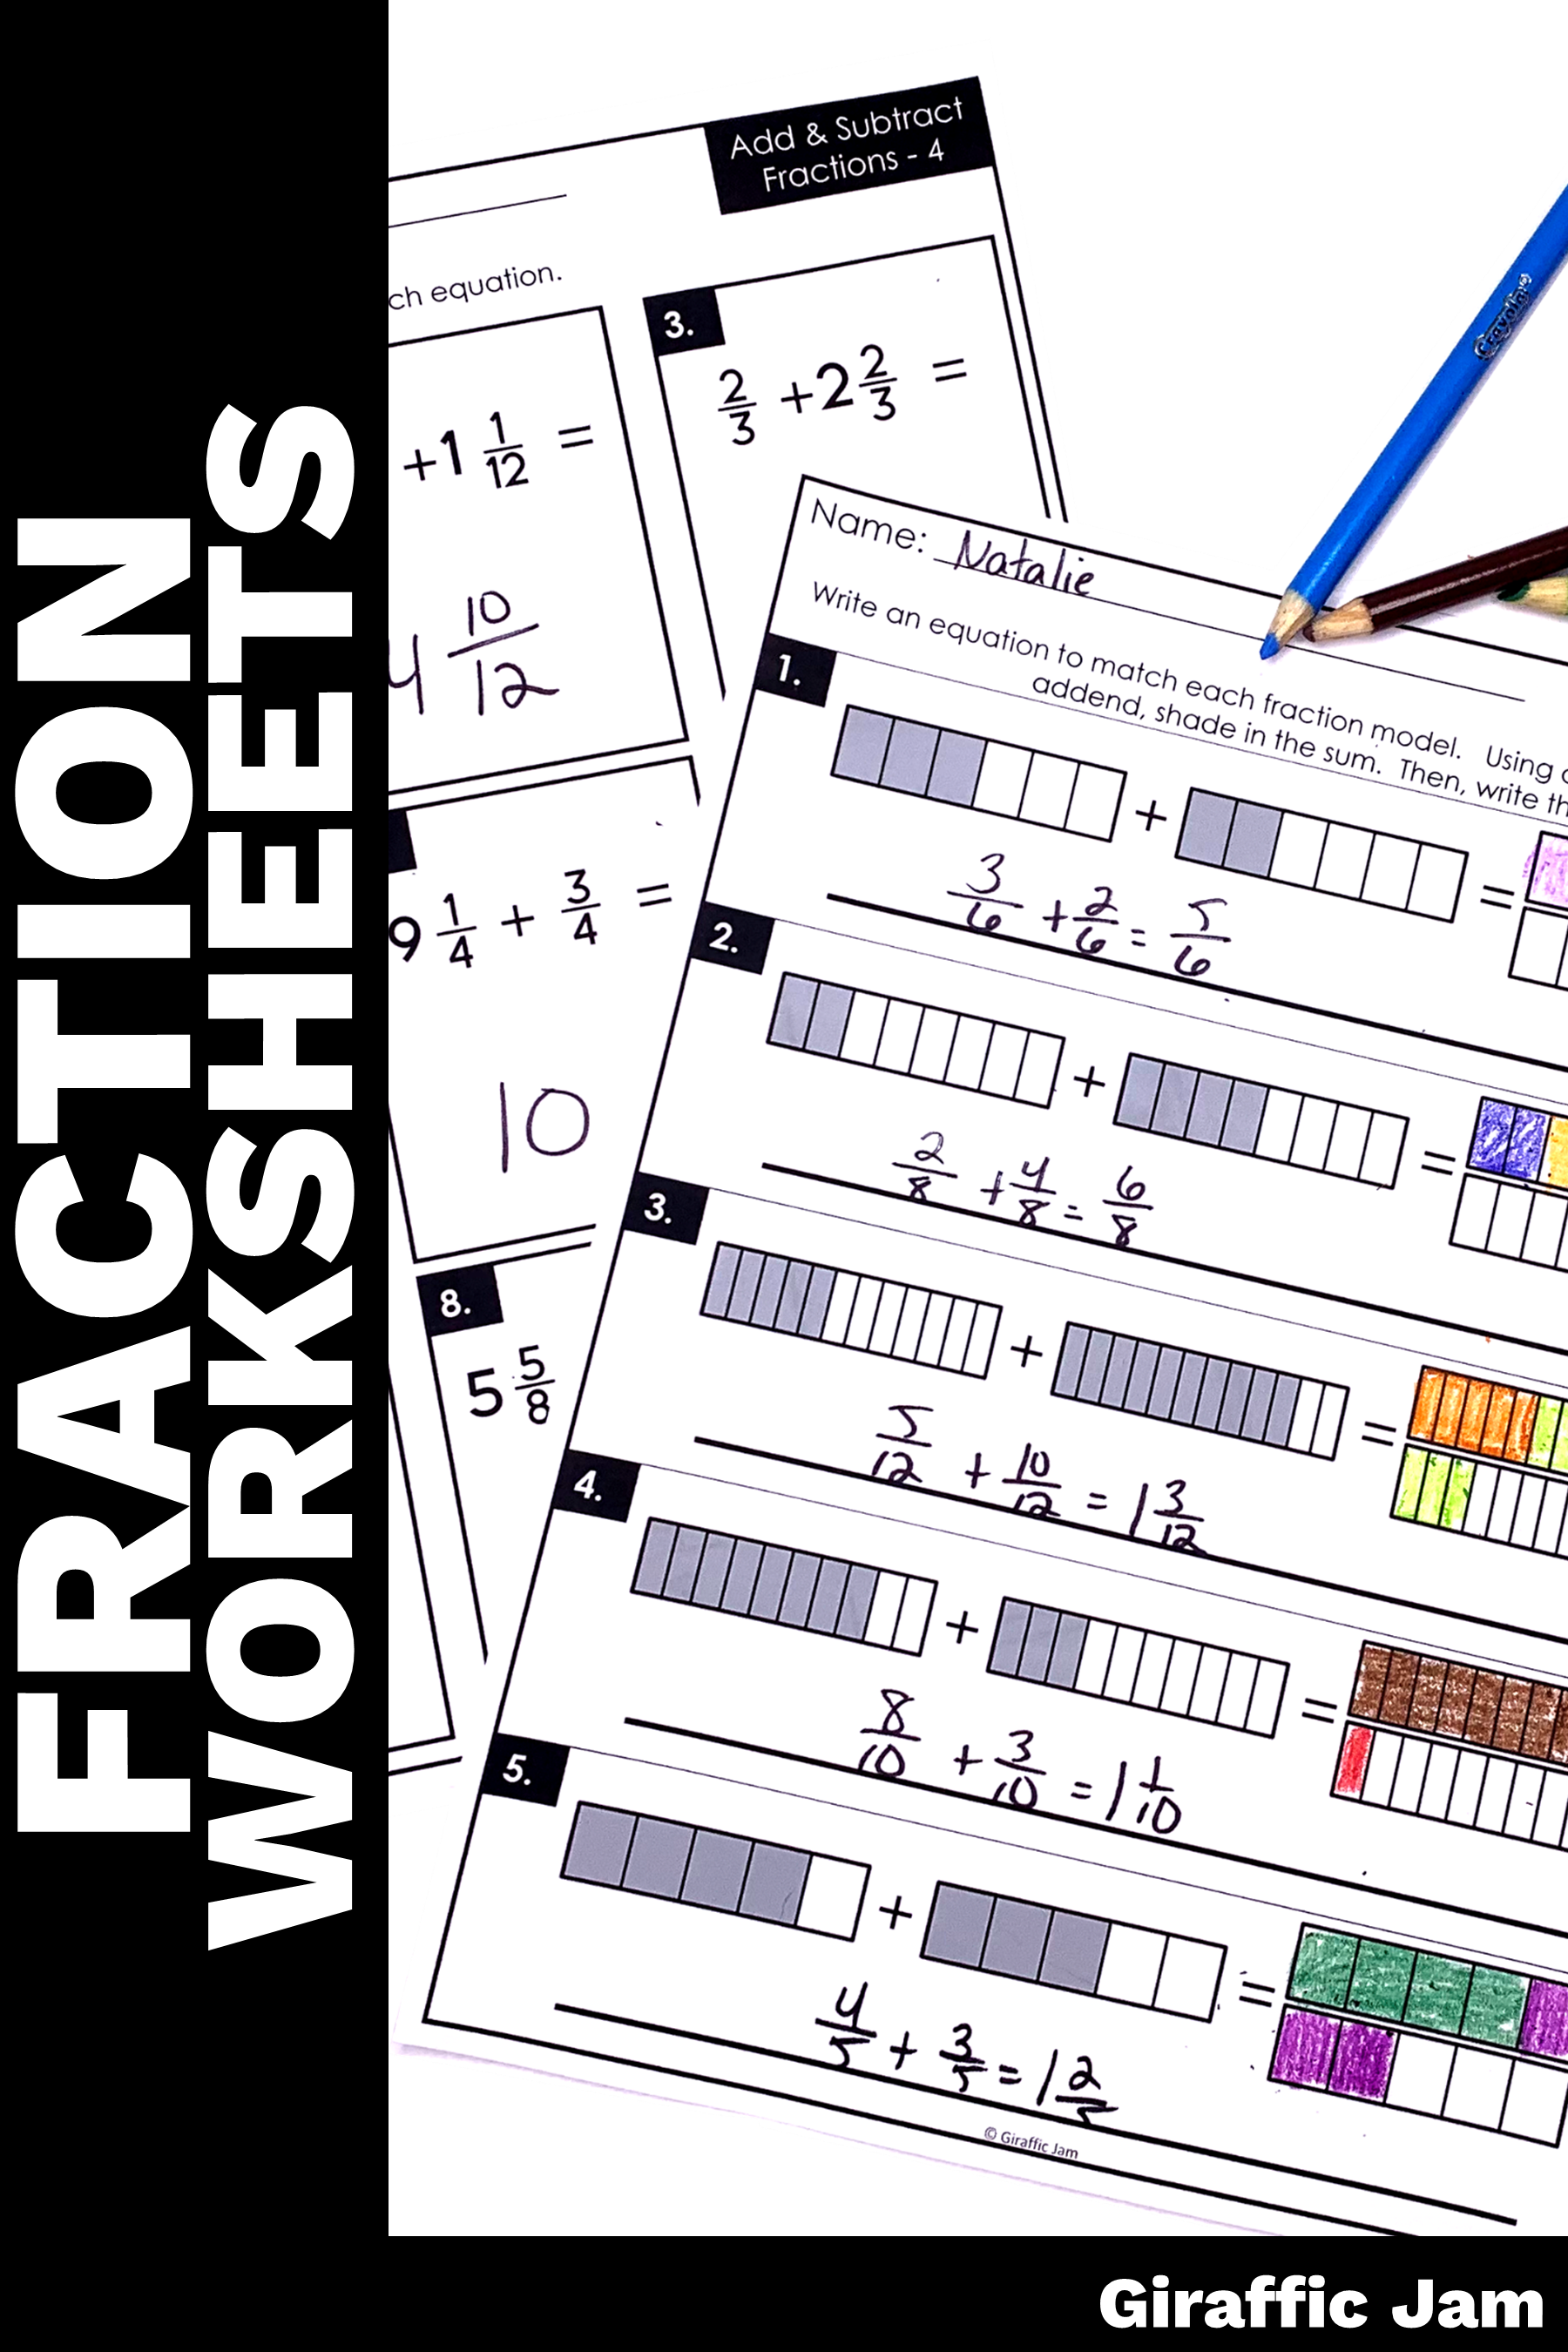 Adding and Subtracting Fractions Worksheets   Fraction Homework   Fractions  worksheets [ 2700 x 1800 Pixel ]